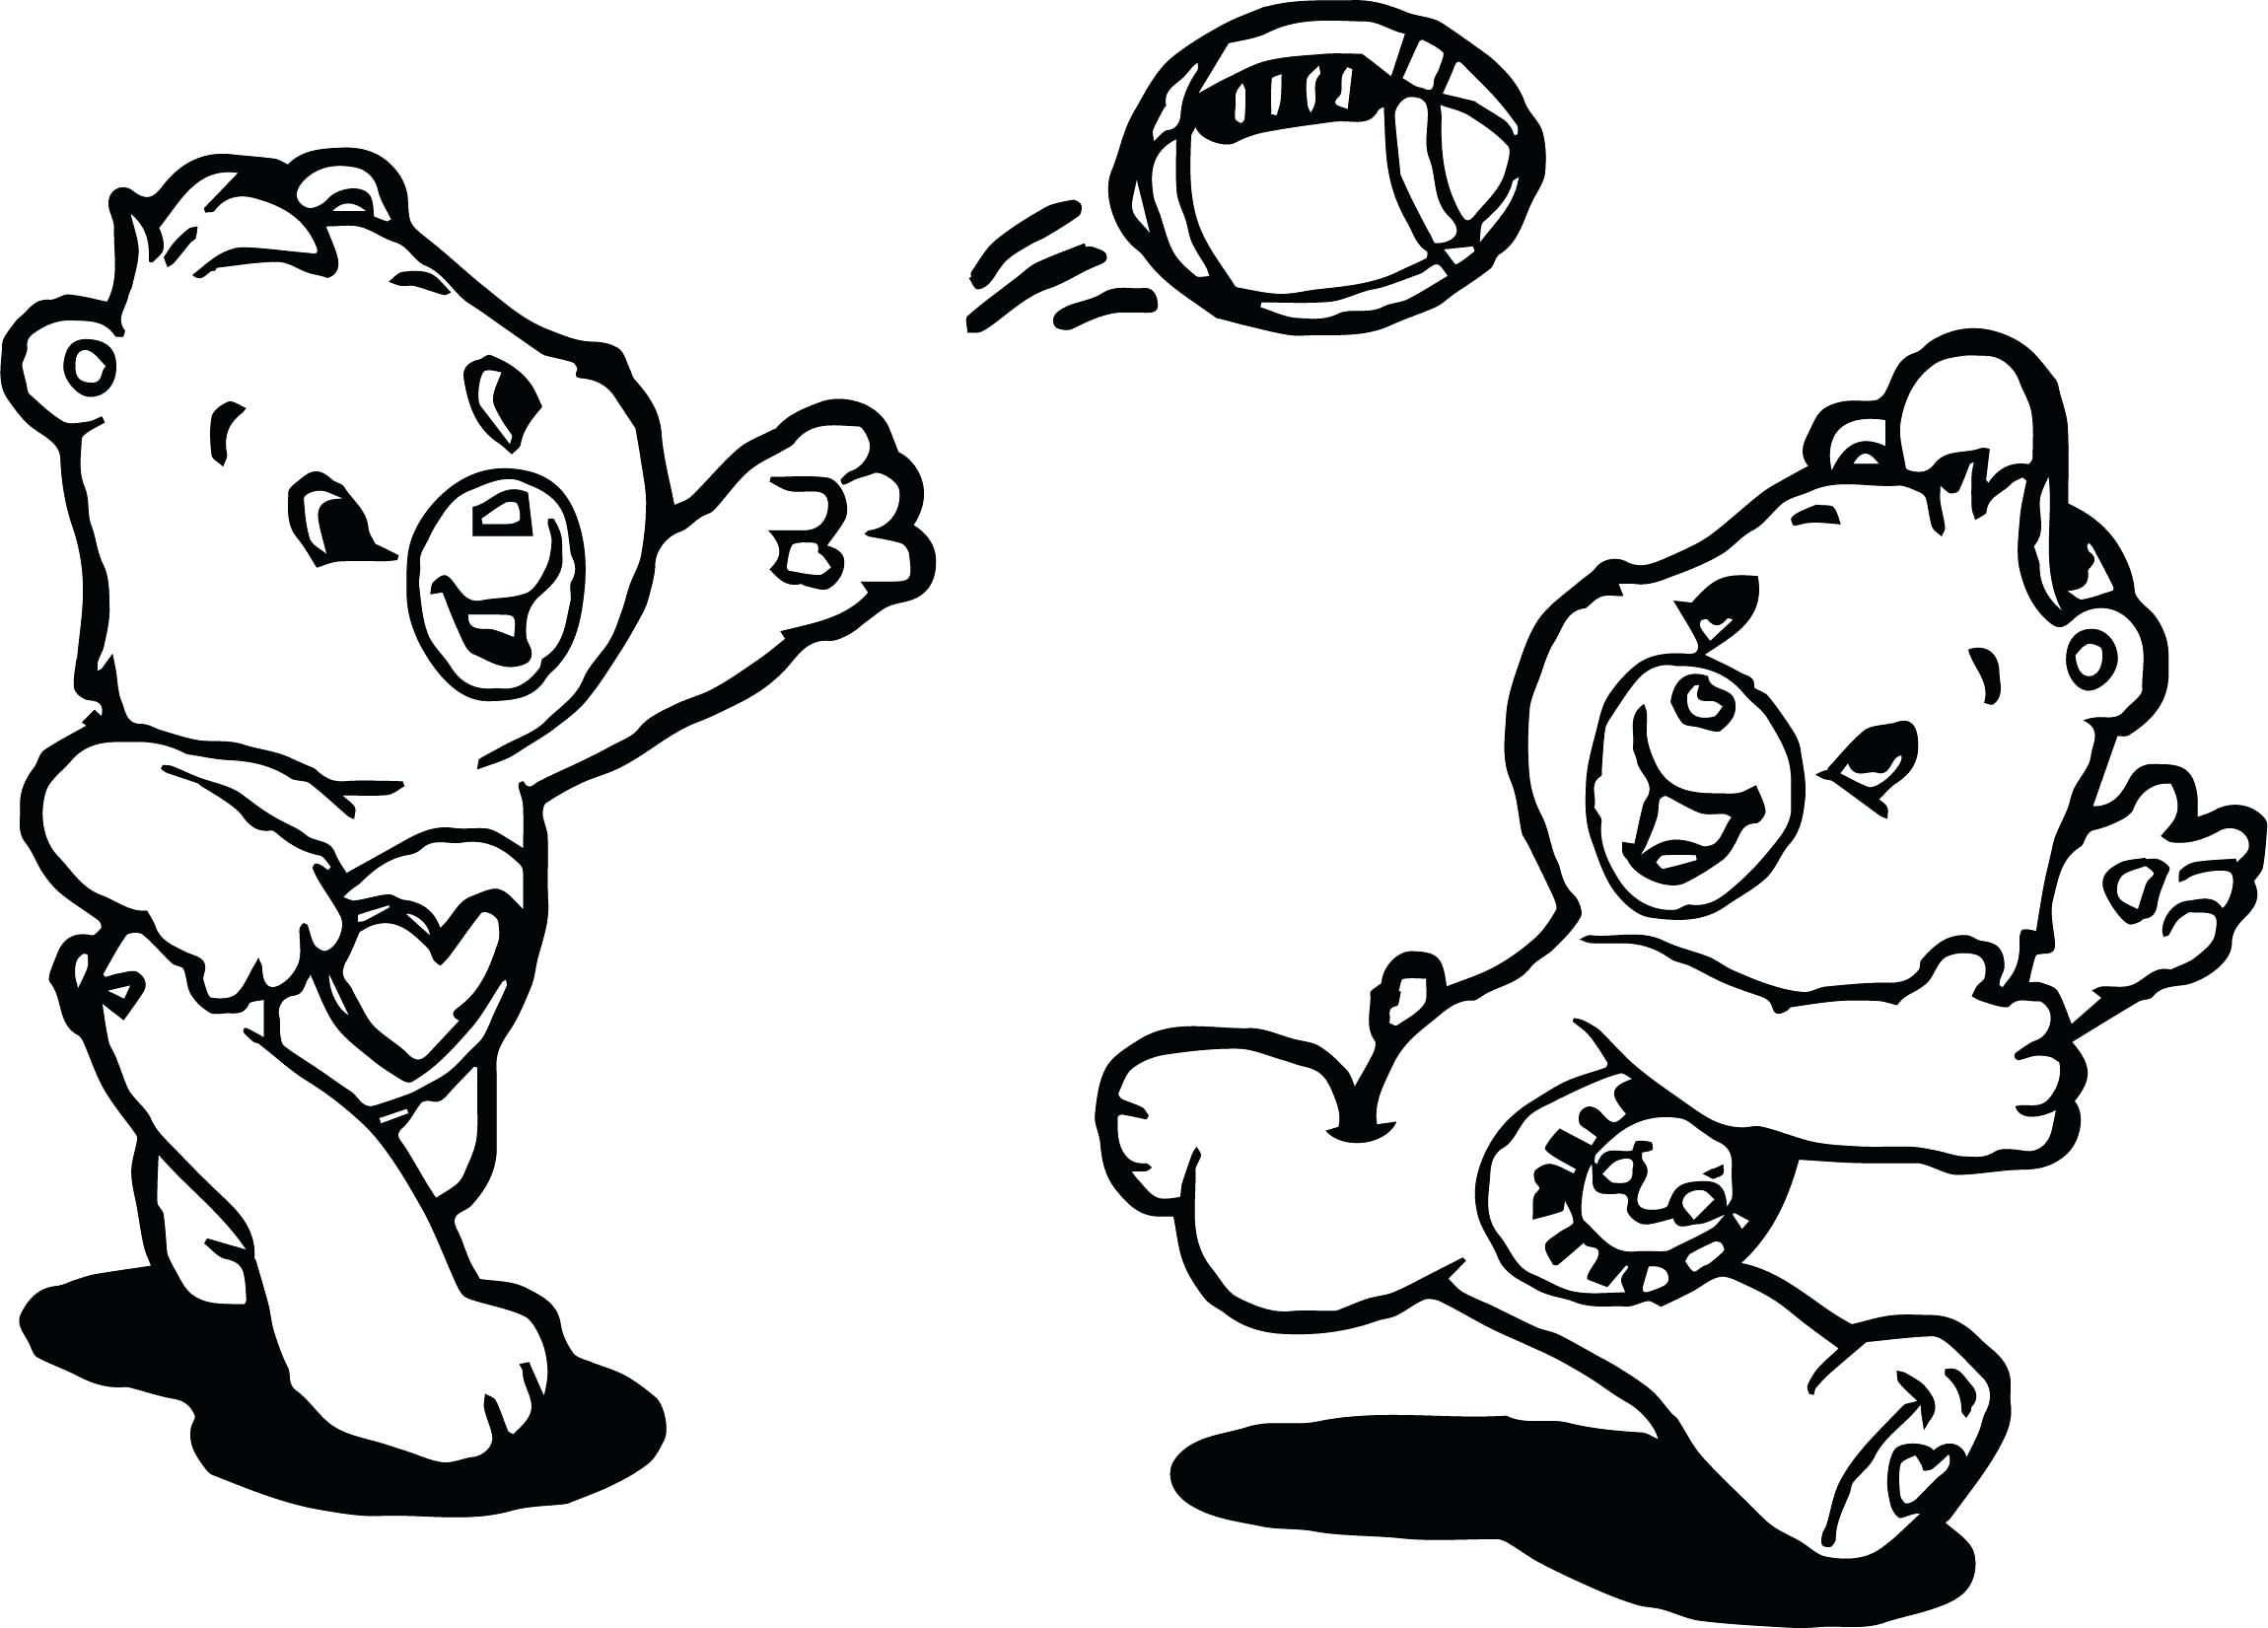 Physical Education Coloring Pages At Getdrawings